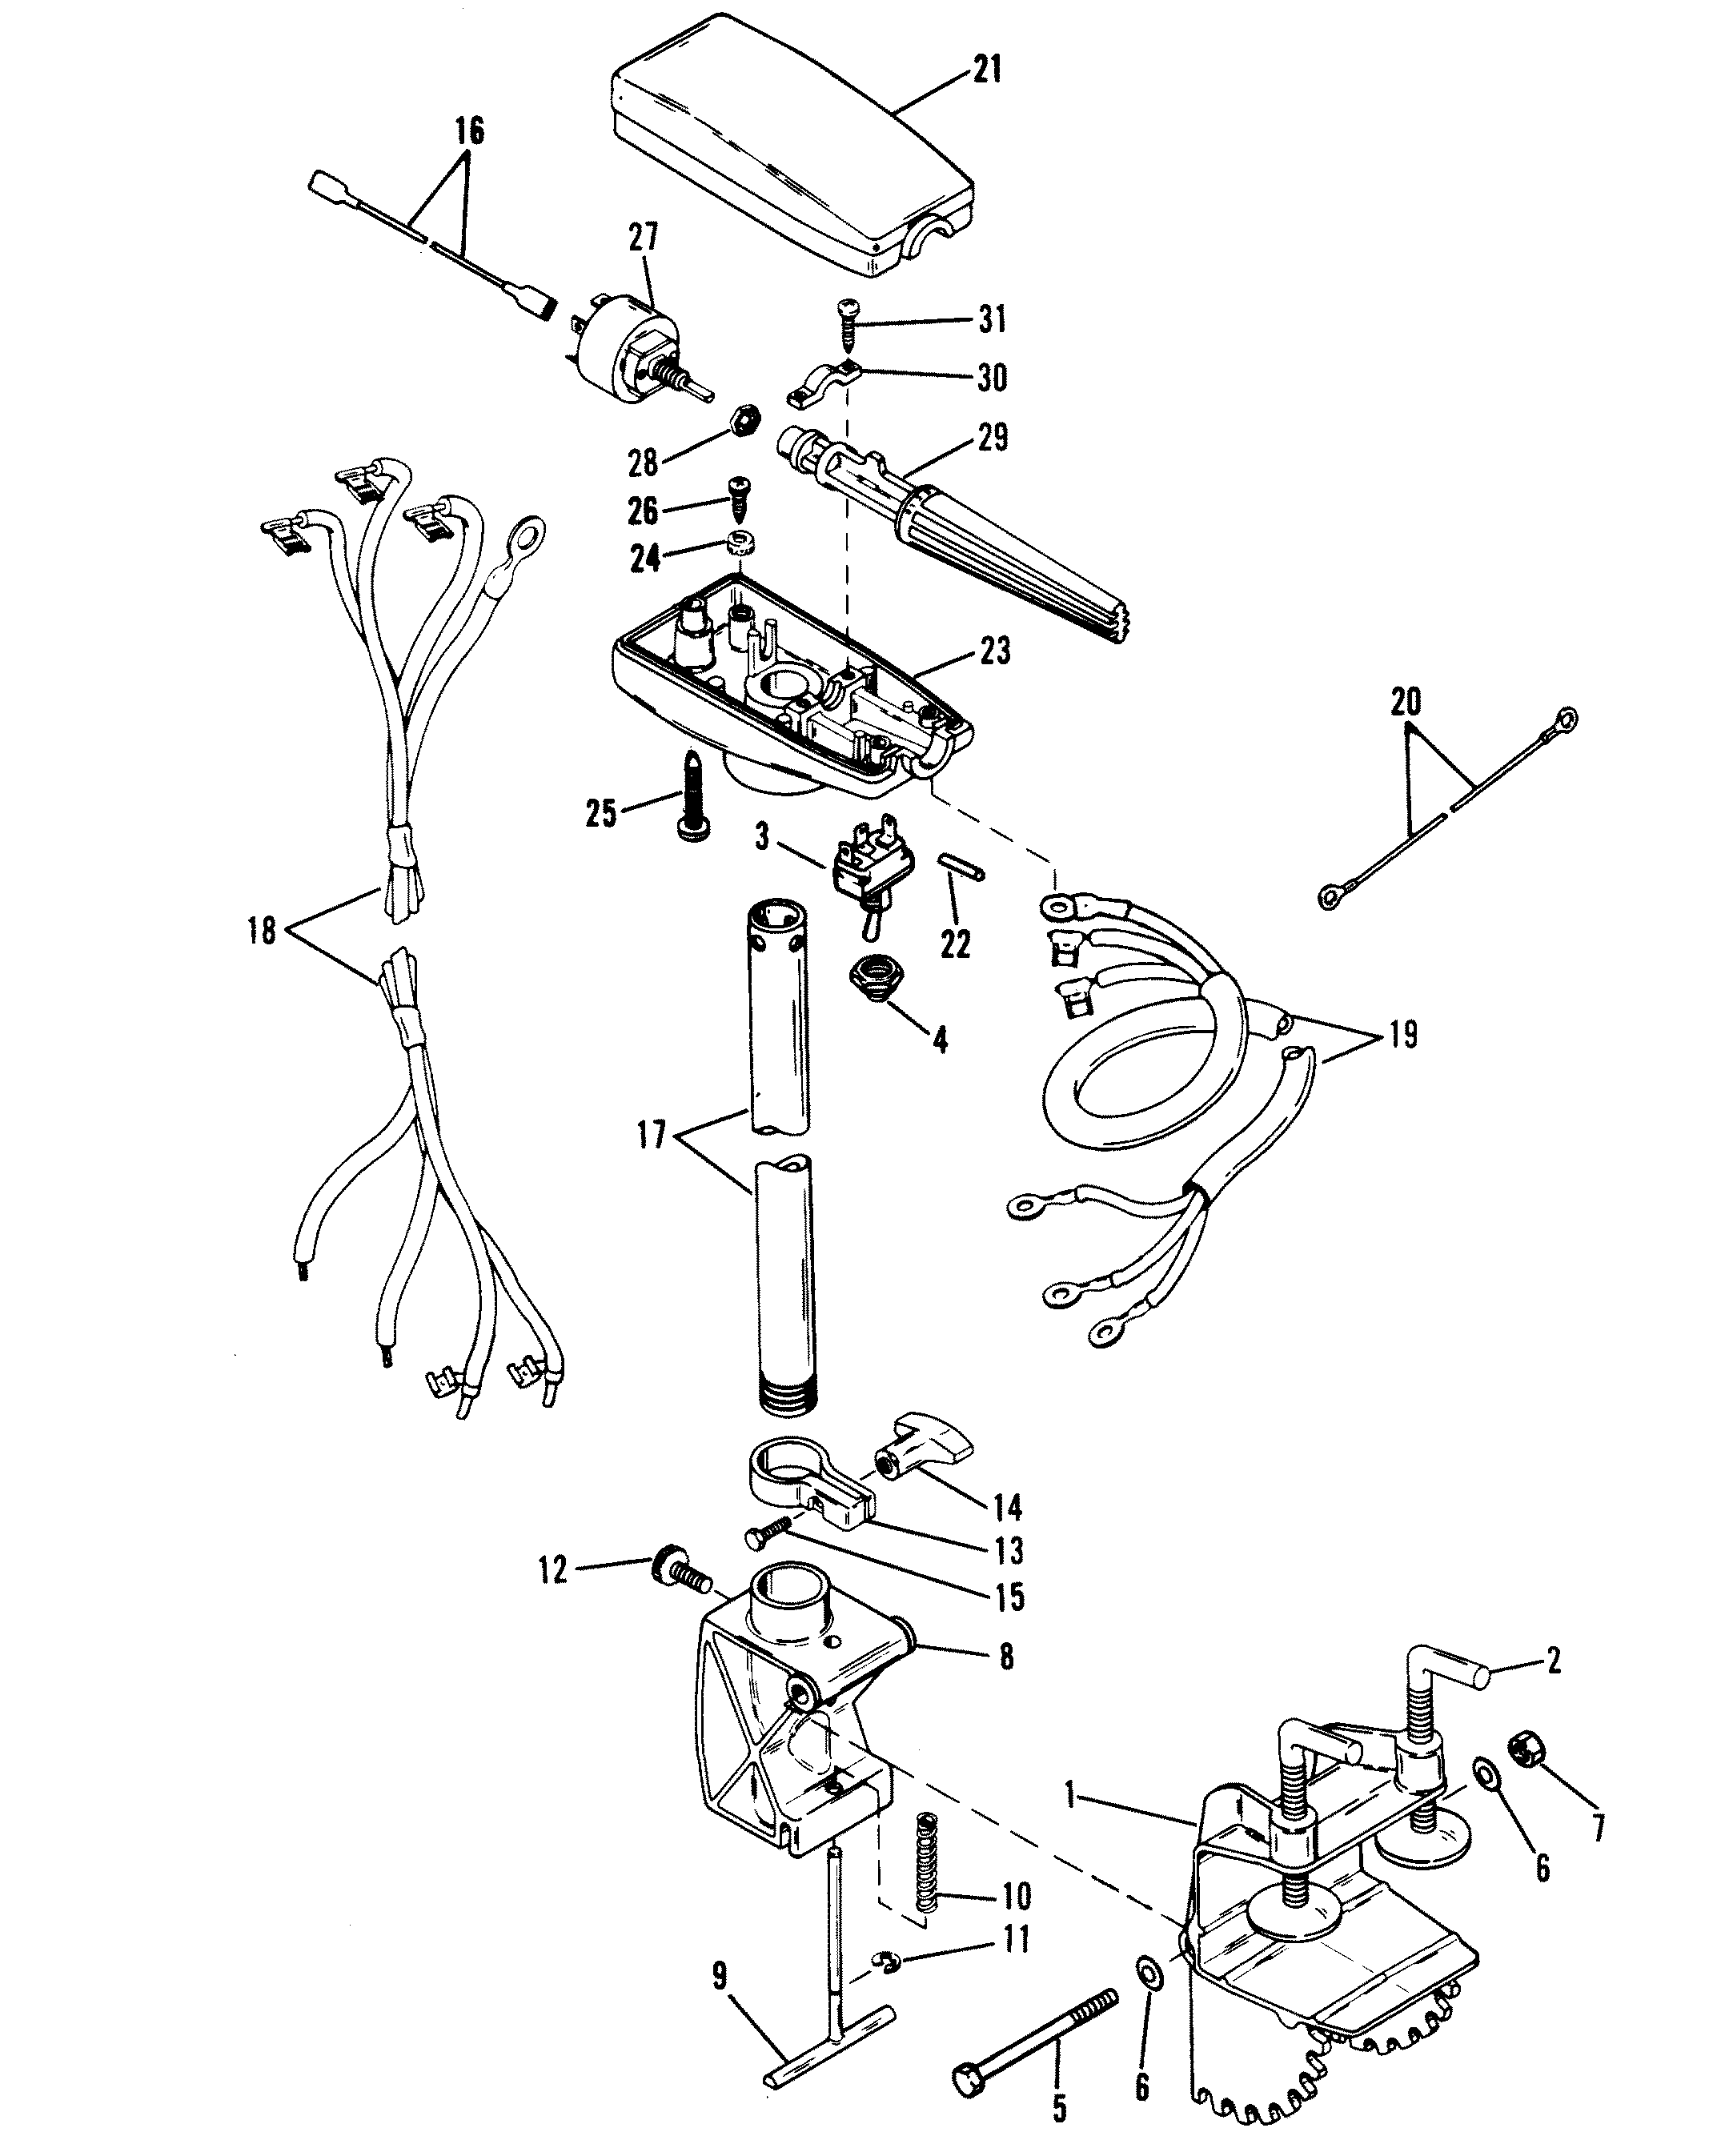 Drive Shaft And Control Housing Tm For Mariner Mercury